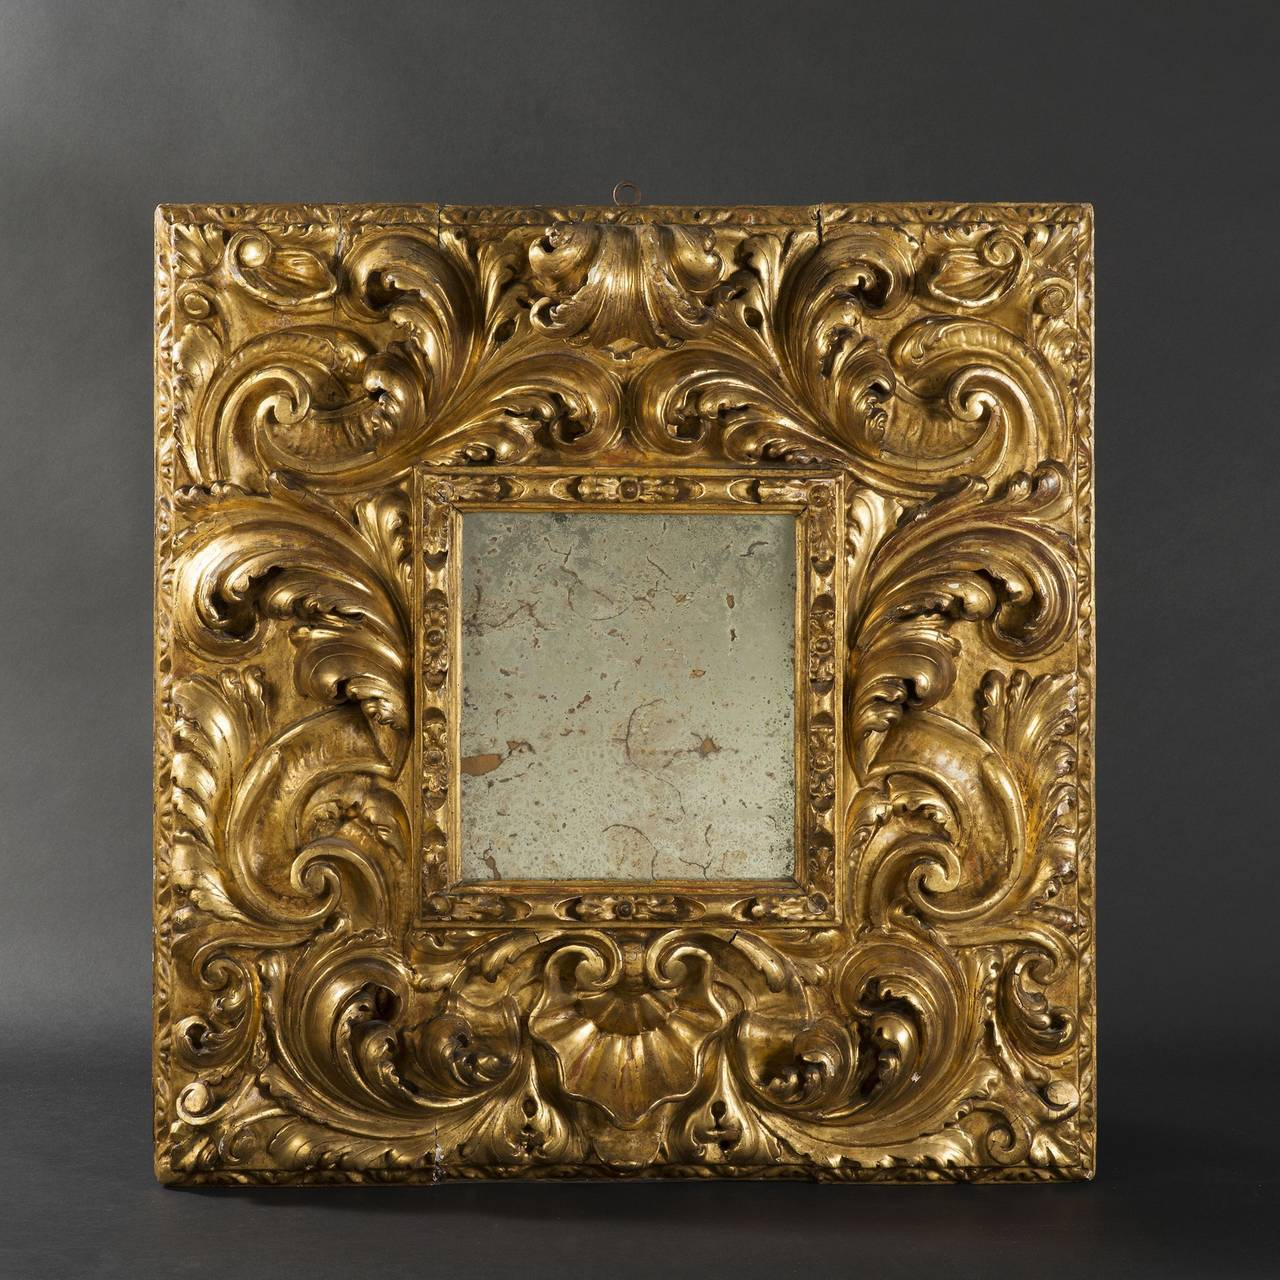 Impressive giltwood mirror spain 17th century at 1stdibs for 17th century mirrors